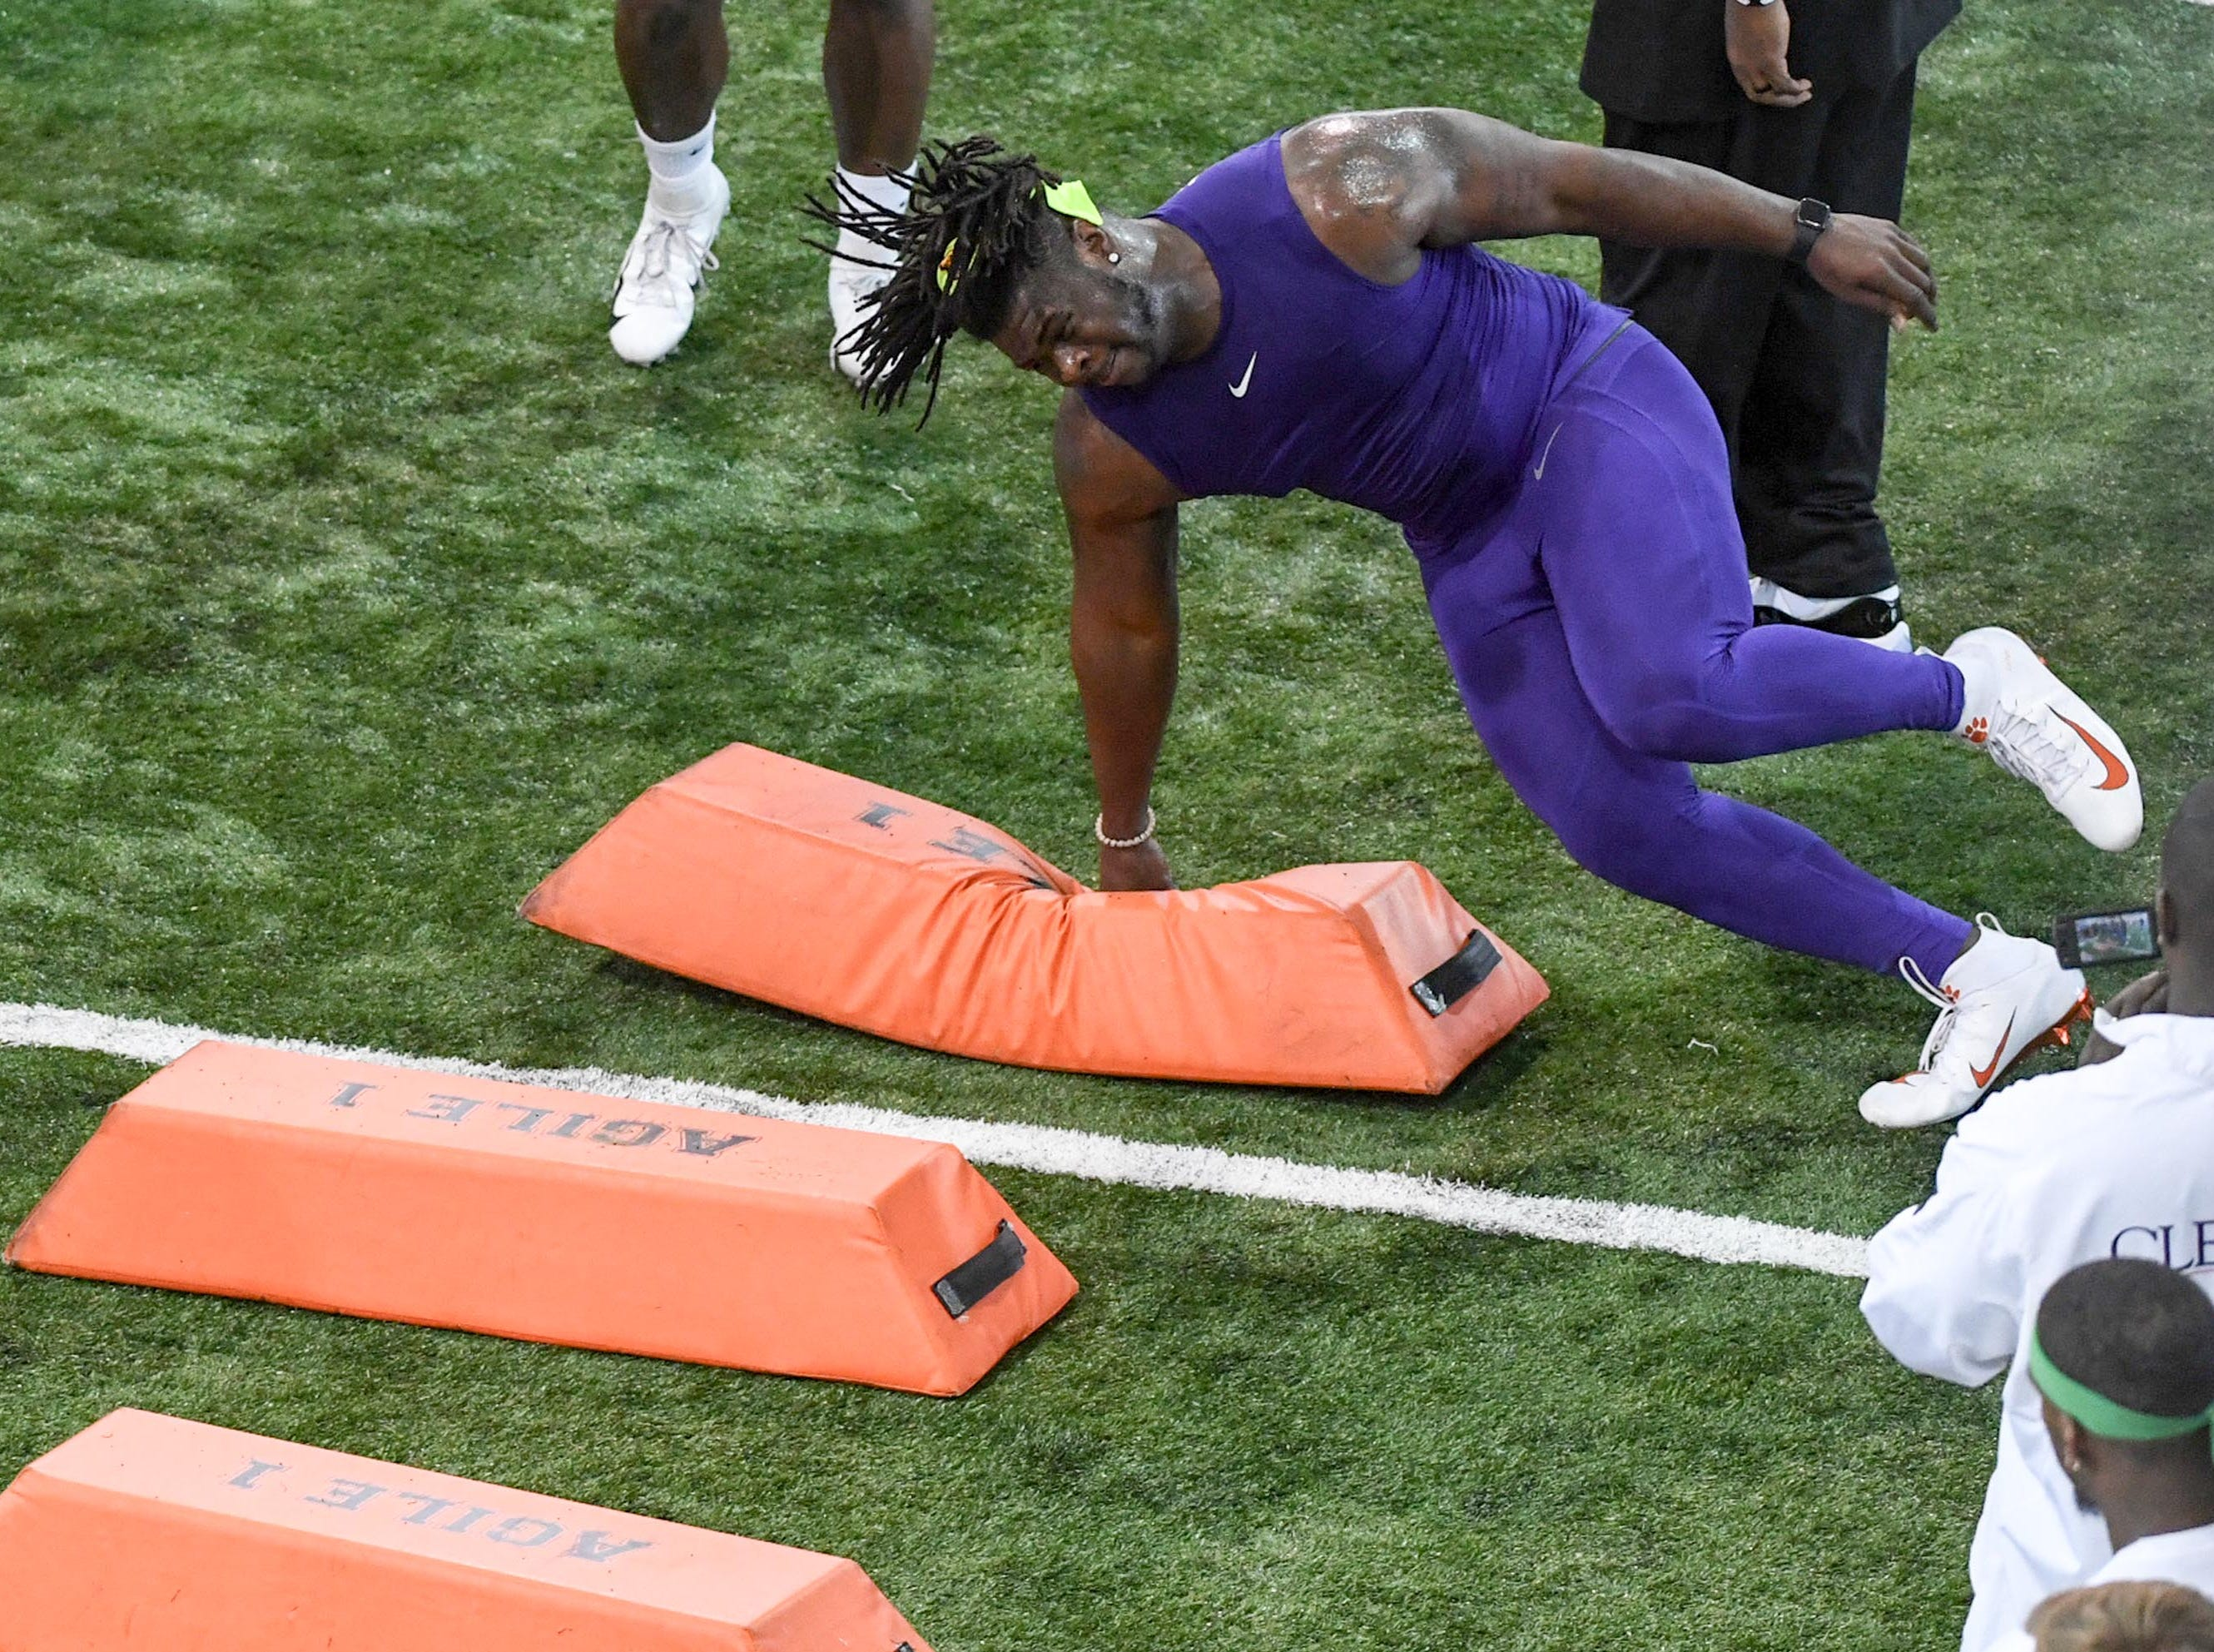 Defensive lineman Albert Huggins Jr. runs during Clemson pro day at the Poe Indoor Facility in Clemson Thursday, March 14, 2019.